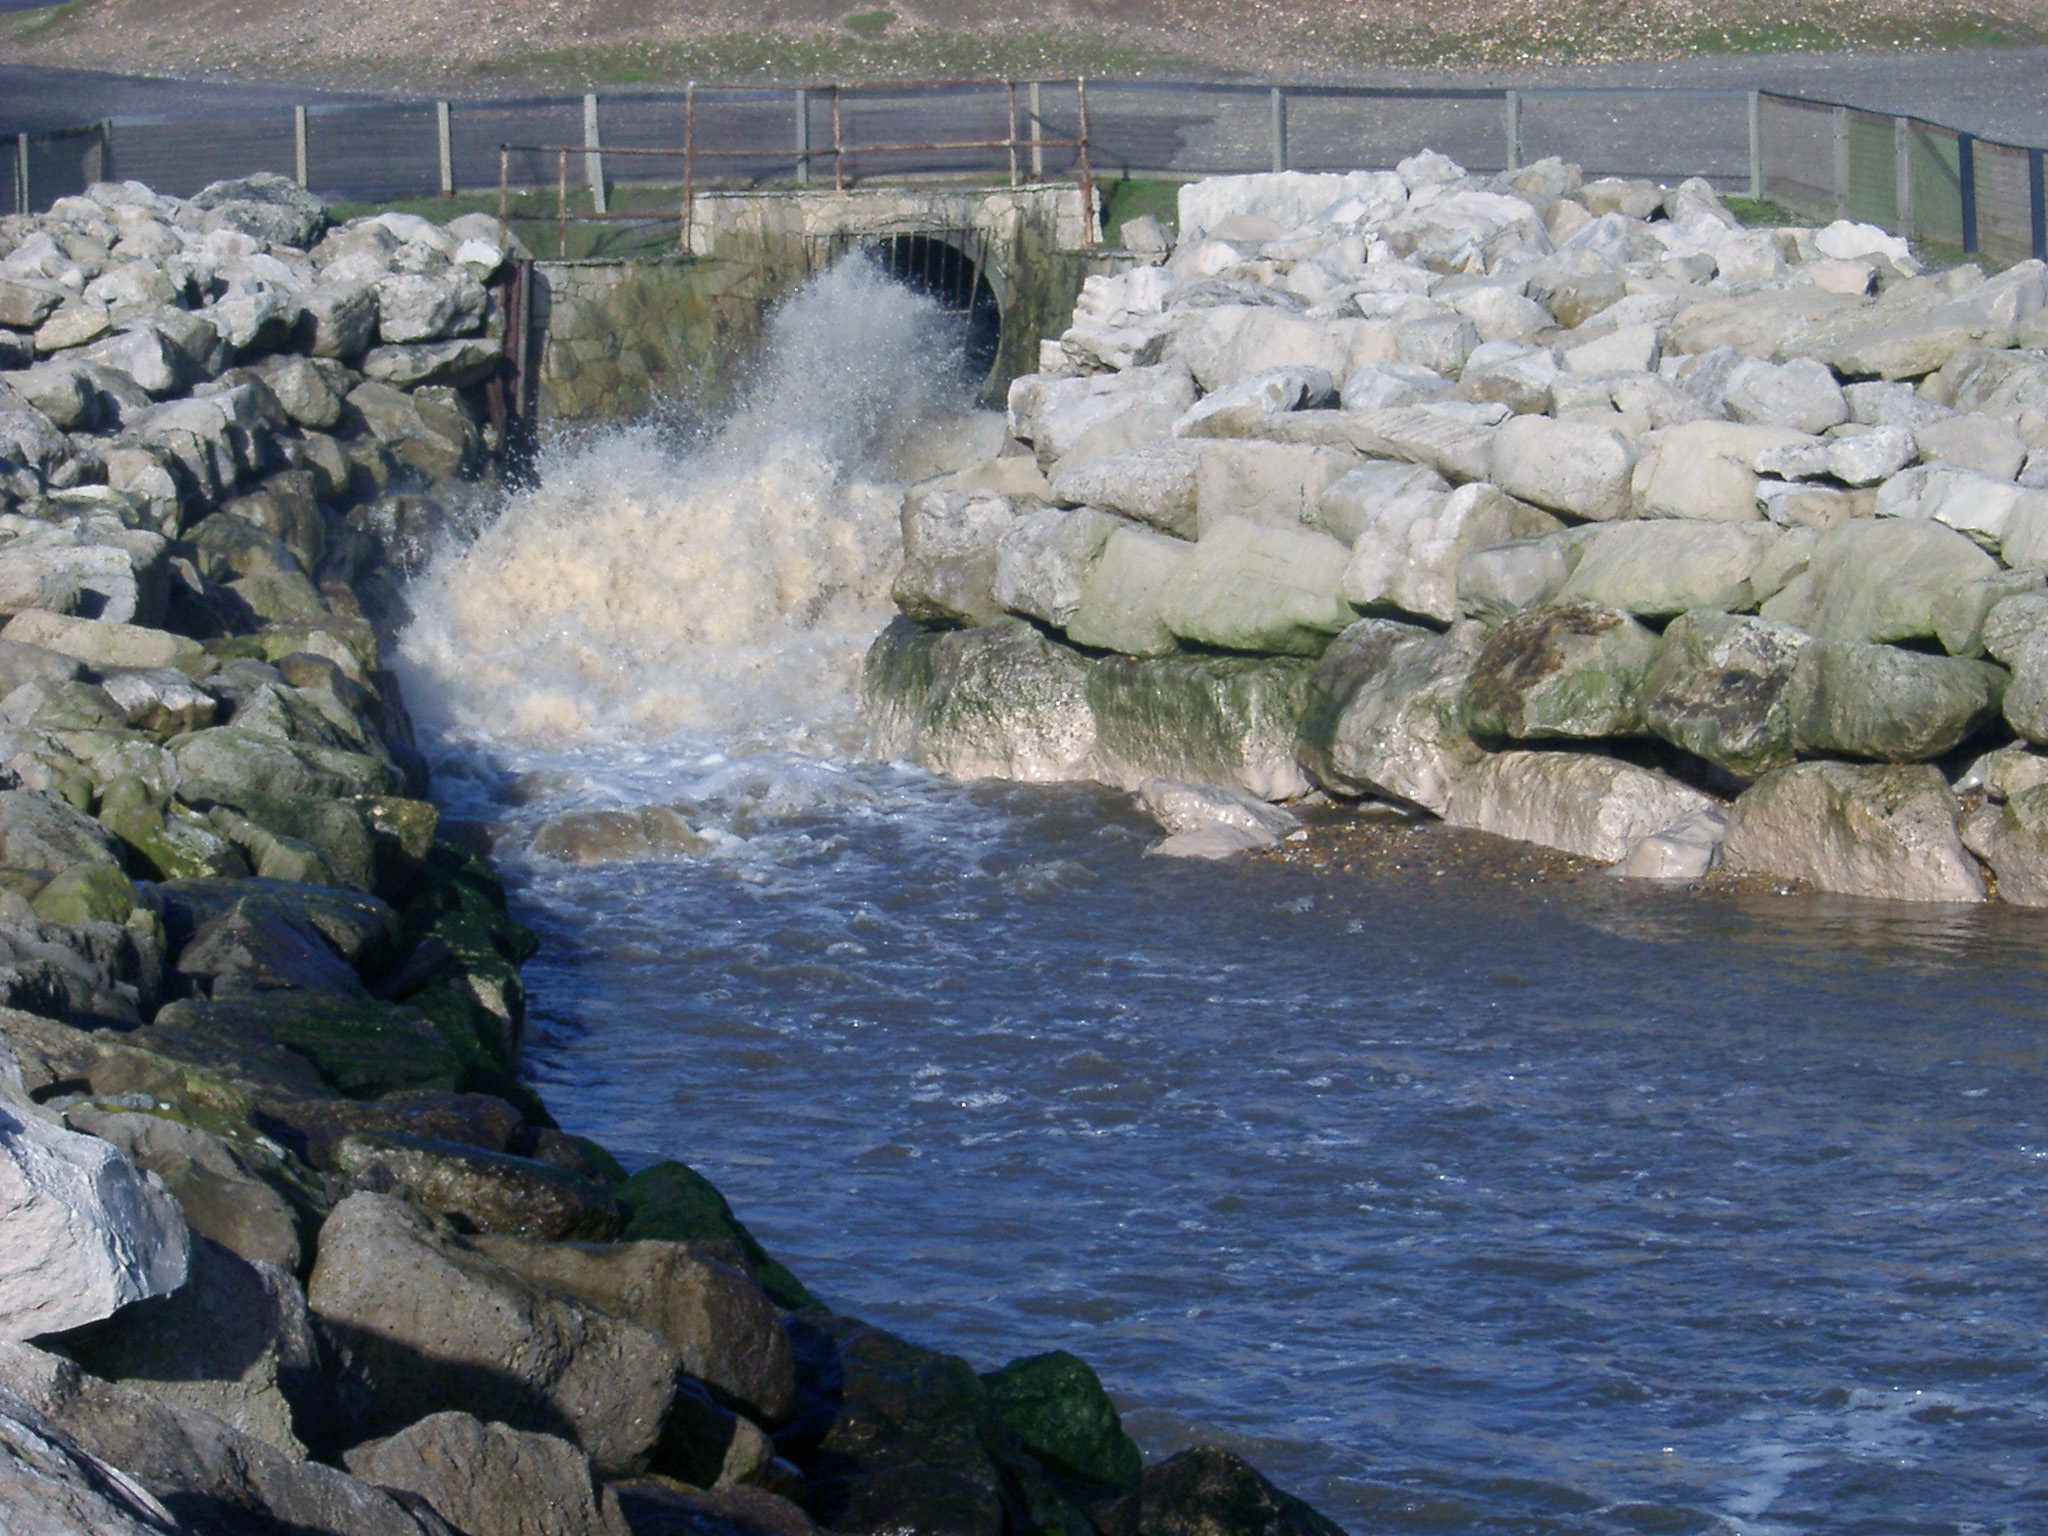 Free image of Water gushing from a stormwater drain or culvert